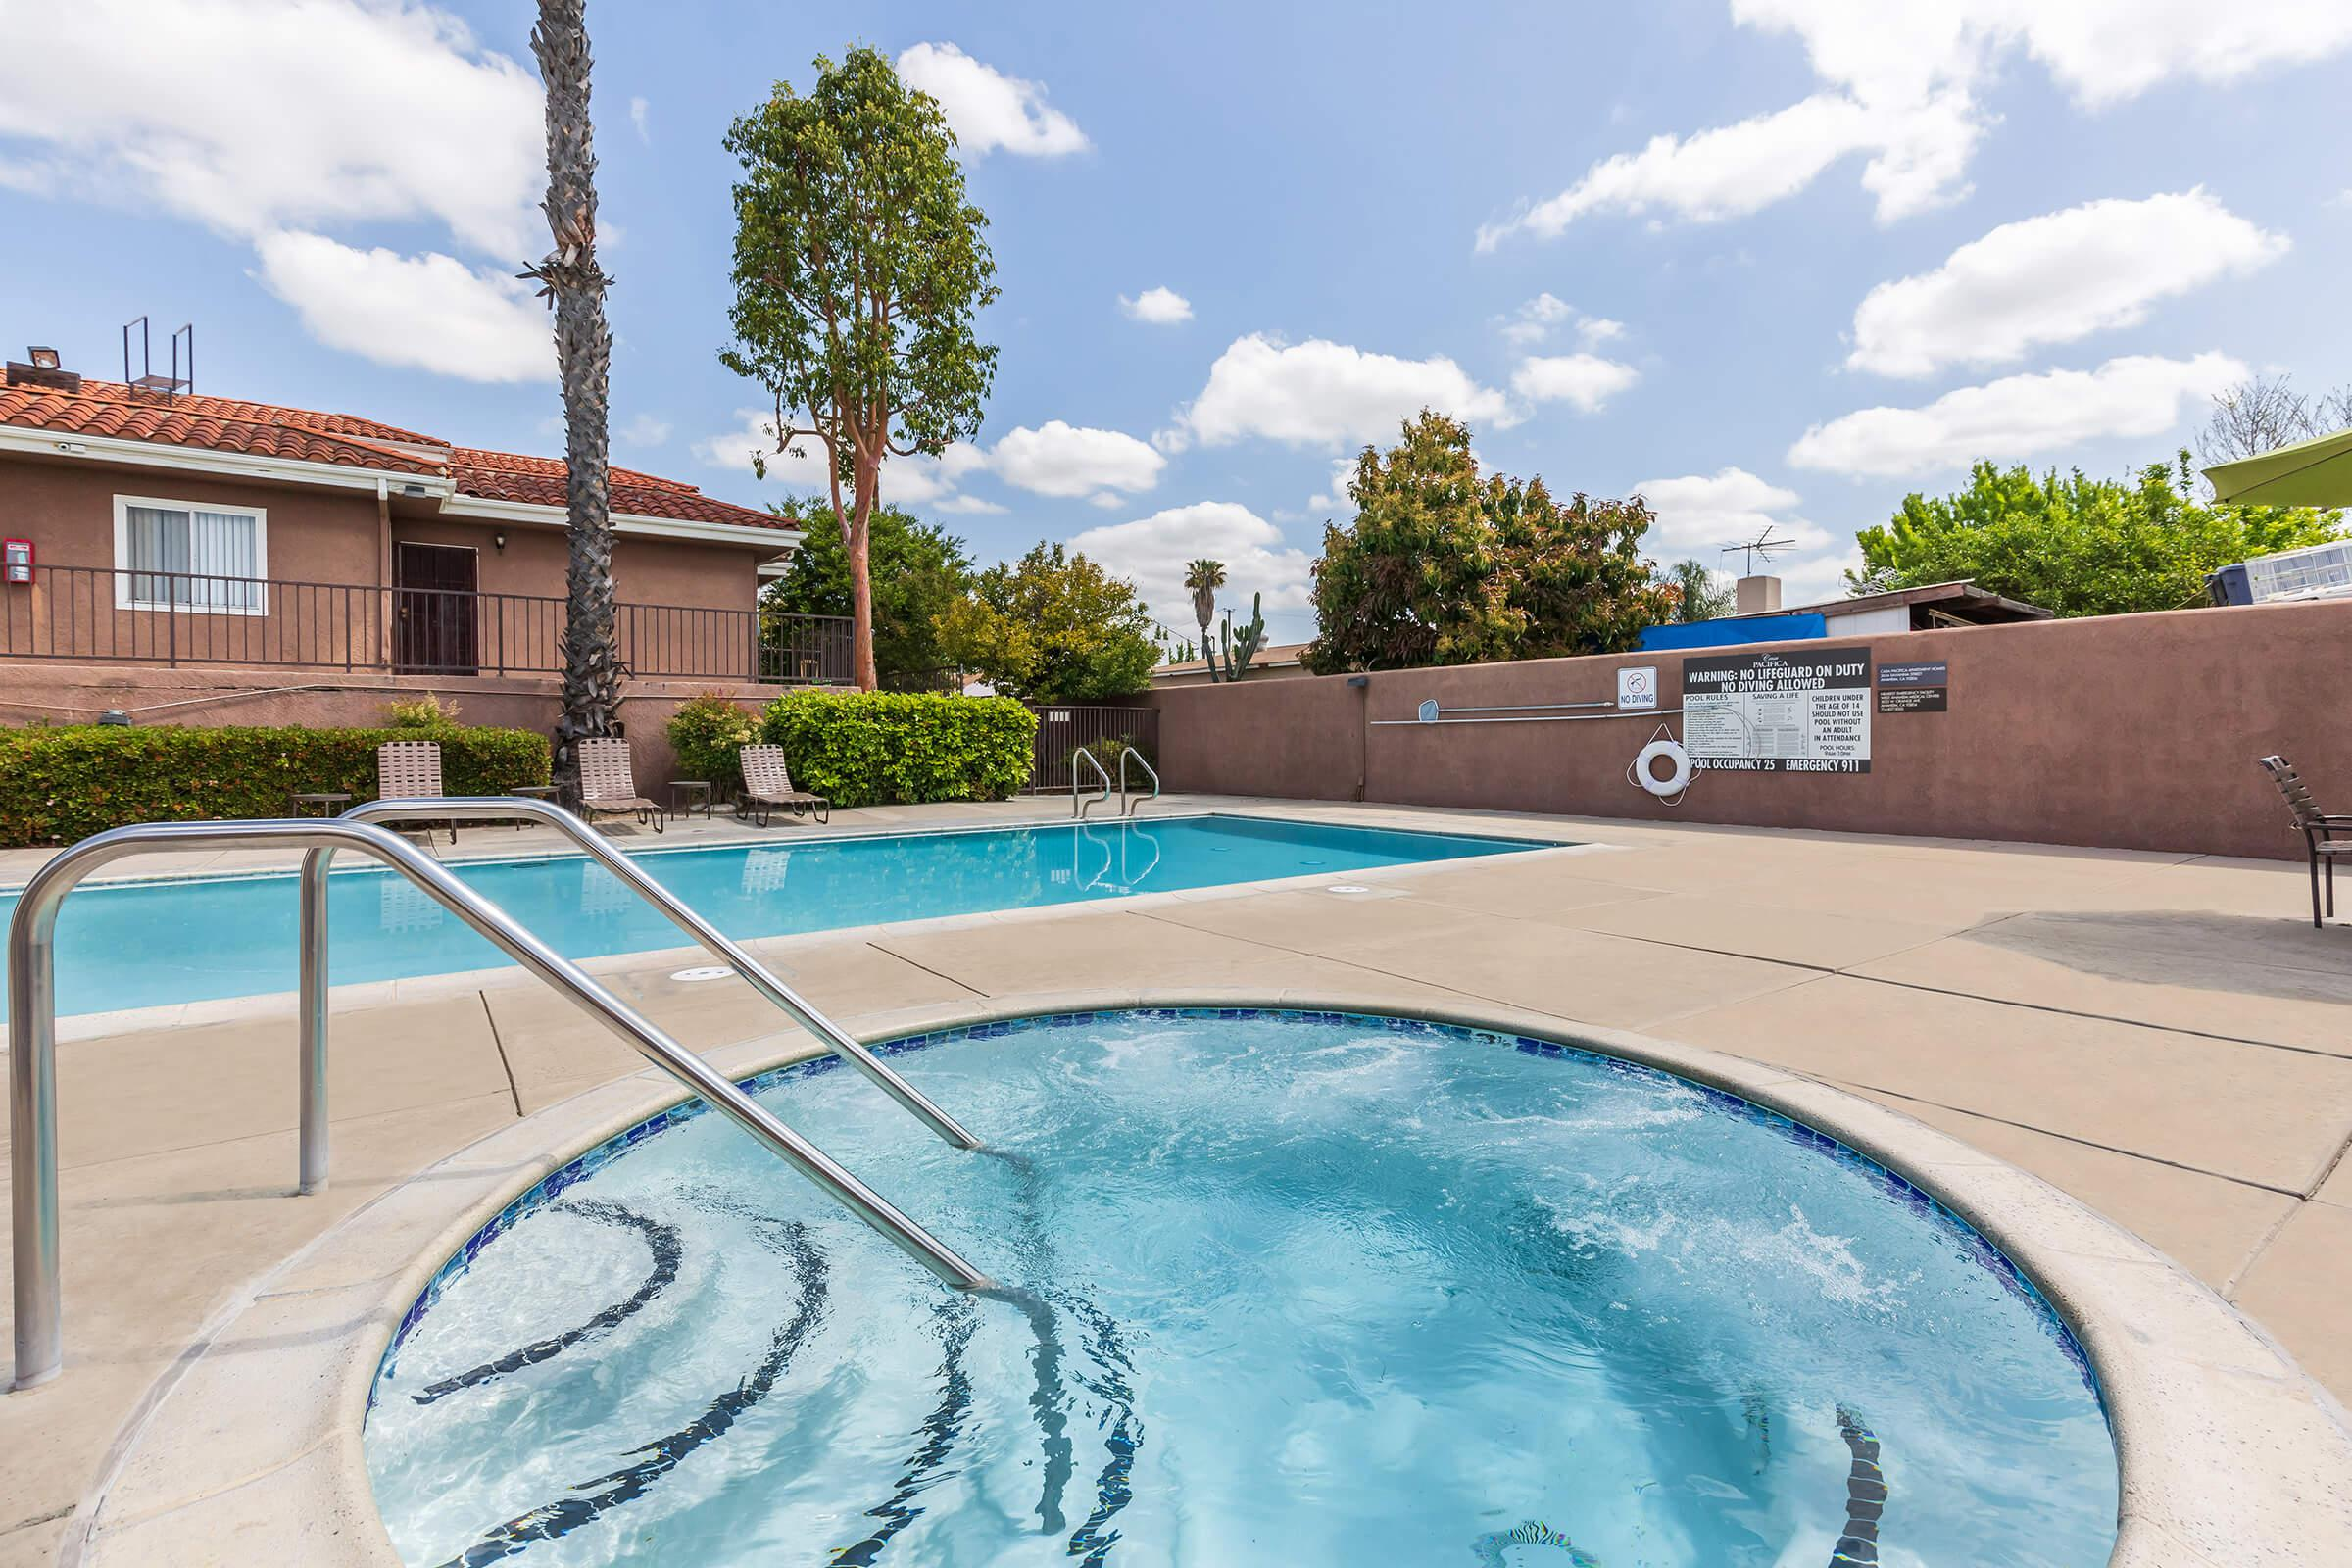 Casa Pacifica Apartment Homes community spa and pool